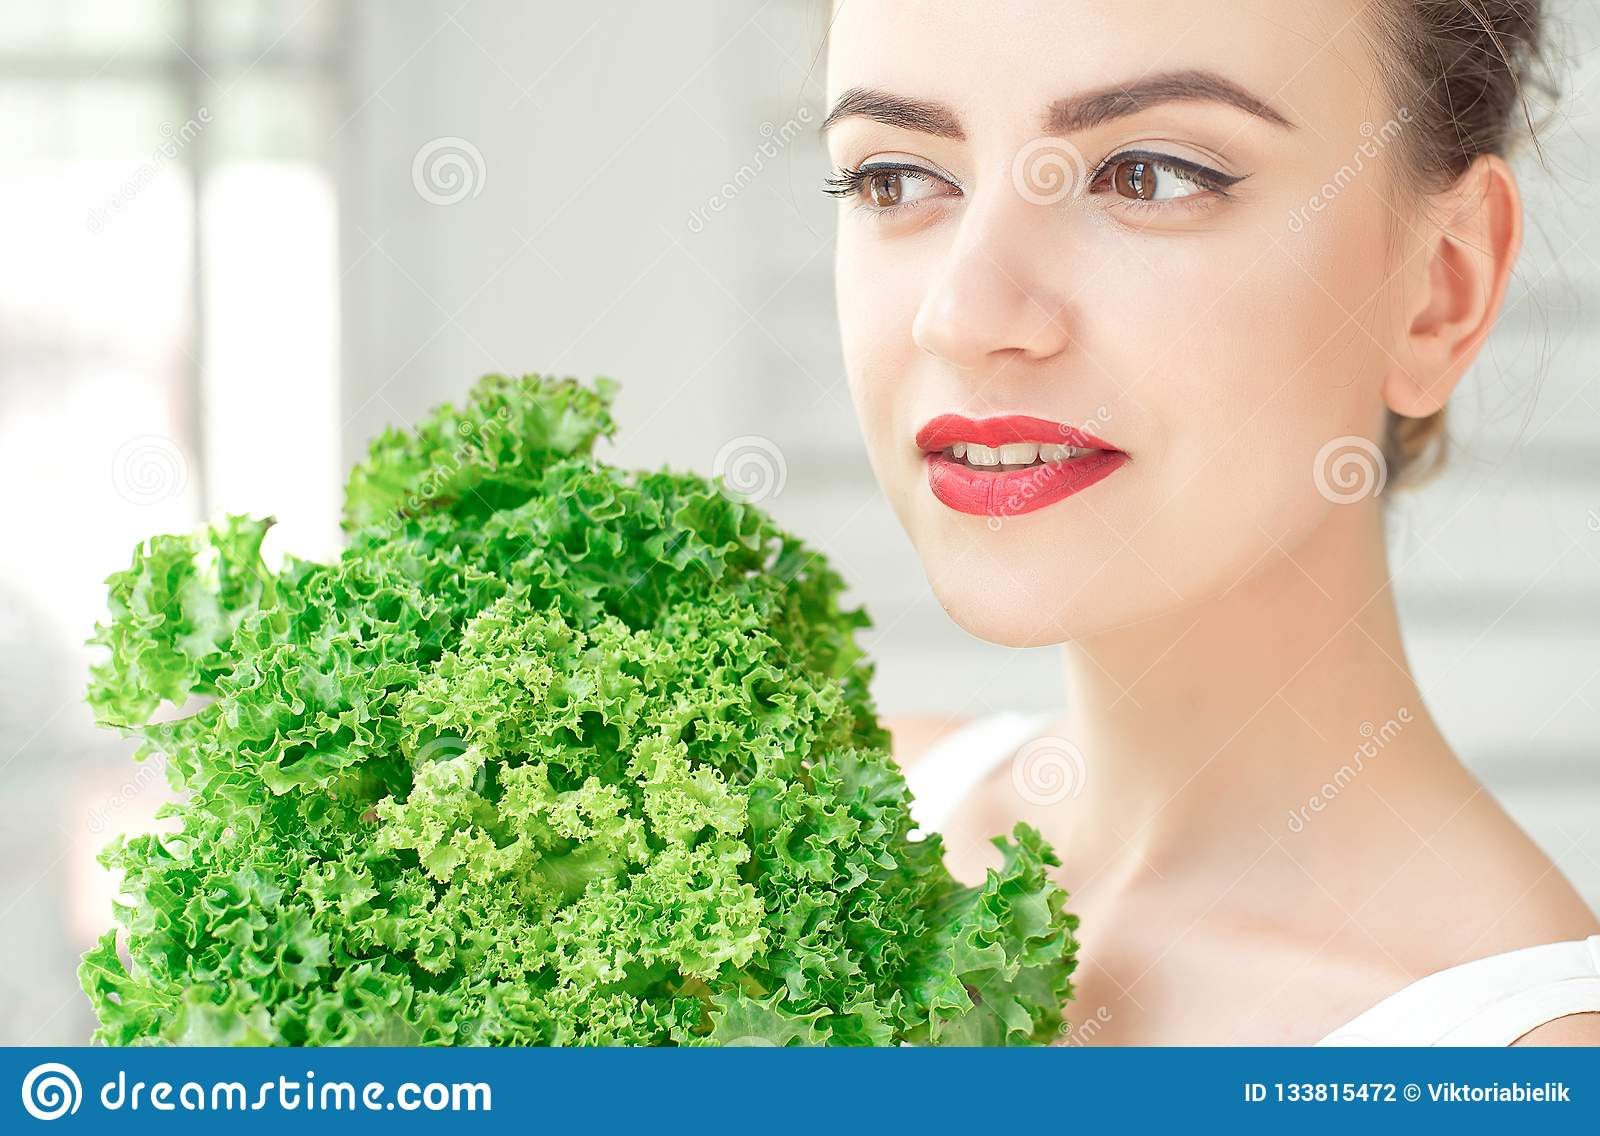 Young cute smiling girl holding organic green leaf lettuce near the face. Healtlife concept.